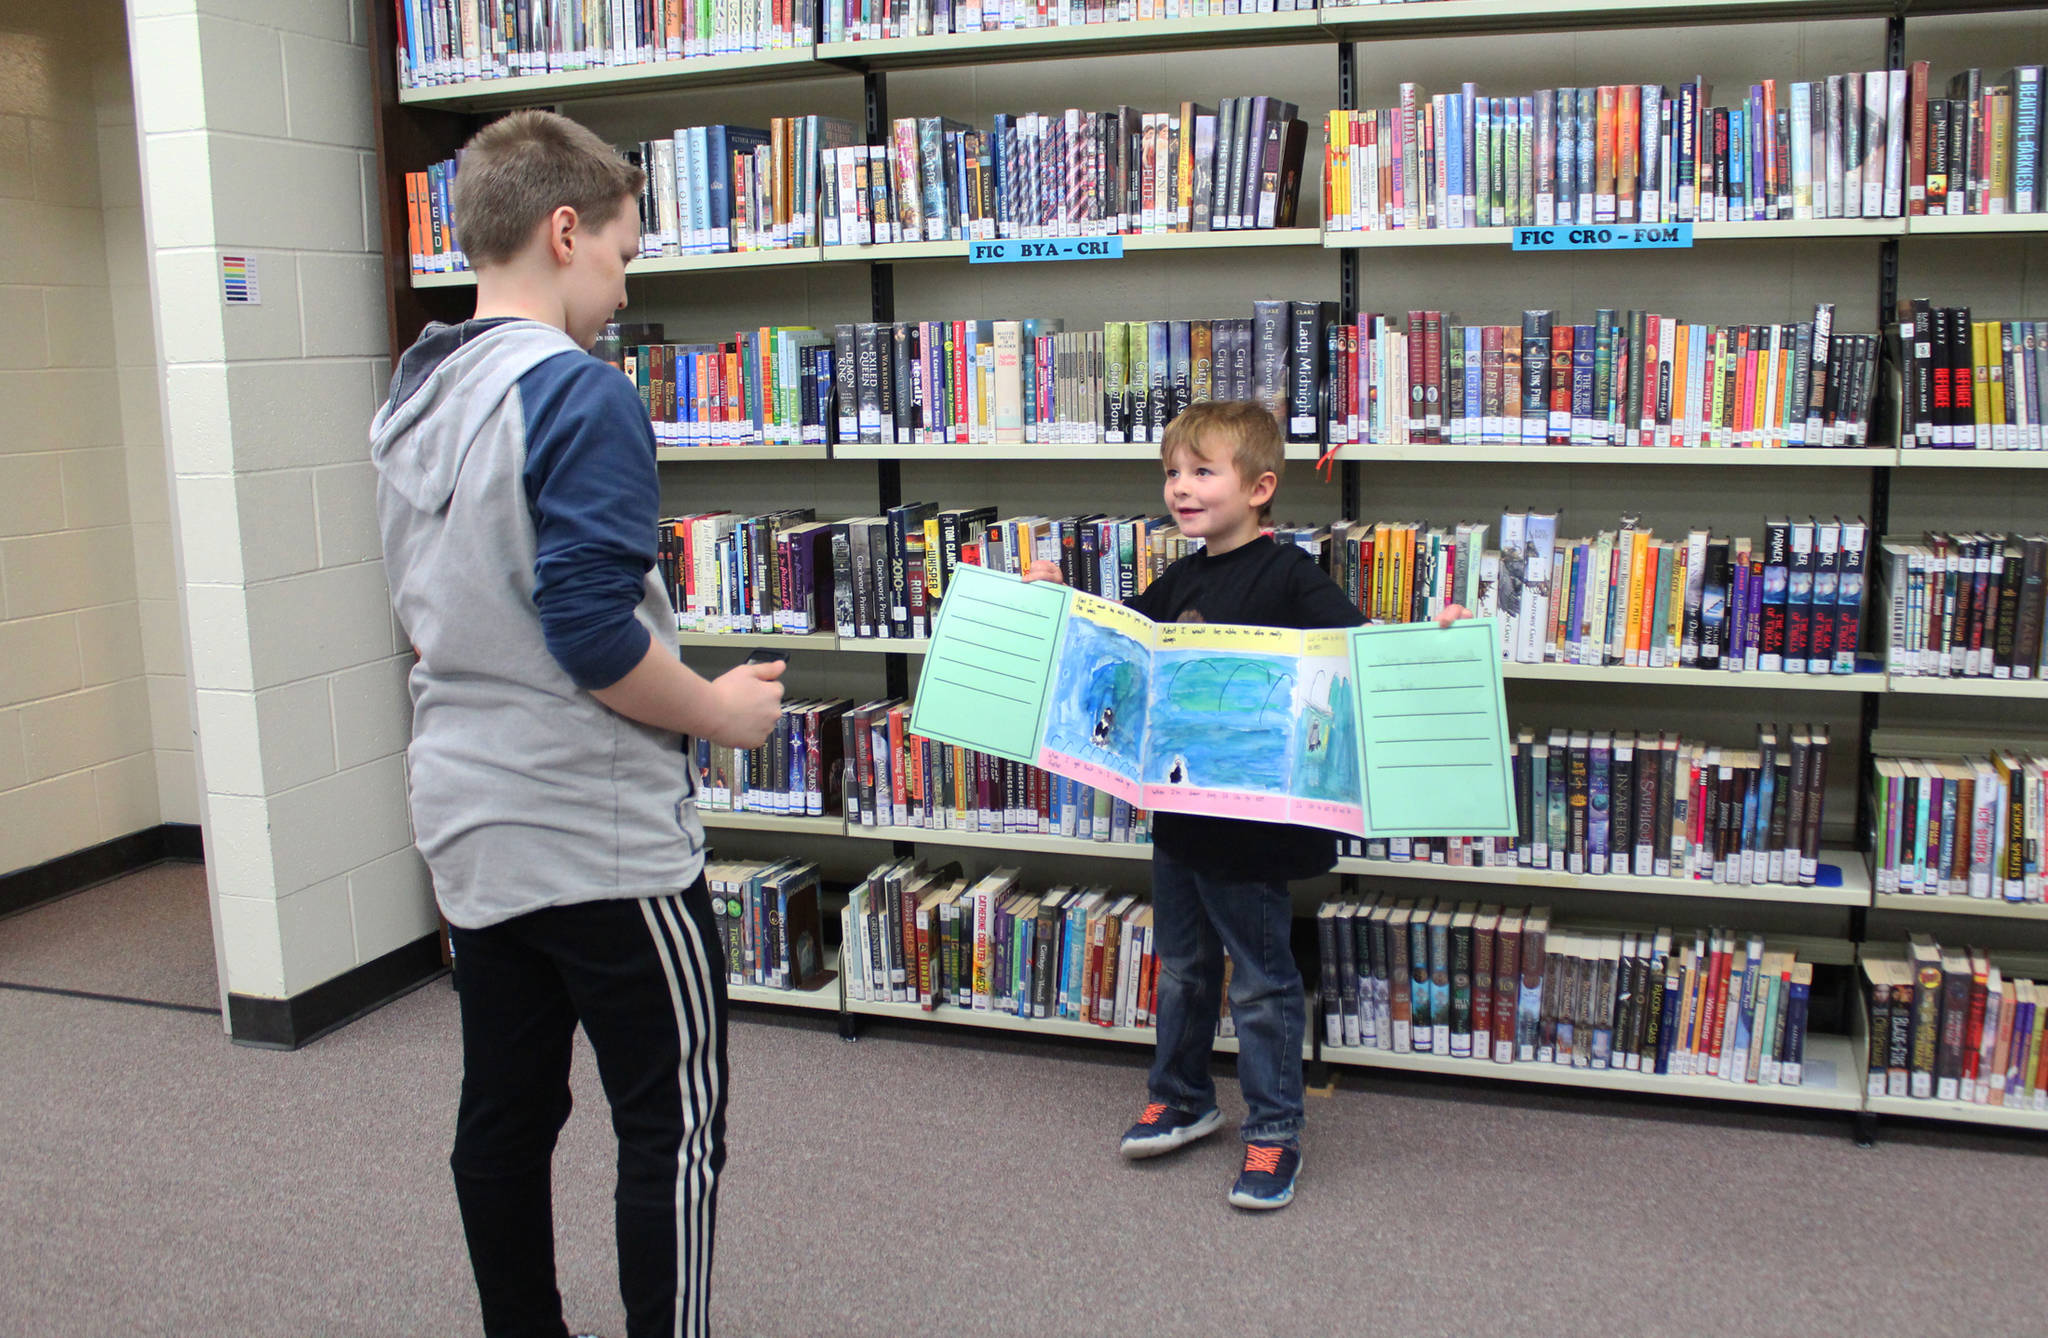 Seventh graders Payton Edens gives guidance to first grader Sawyer Johnson while they work on filming a reading of a book they worked on together during the second day of a mentor program Friday, Feb. 2, 2018 at Homer Middle School. (Photo by Megan Pacer/Homer News)